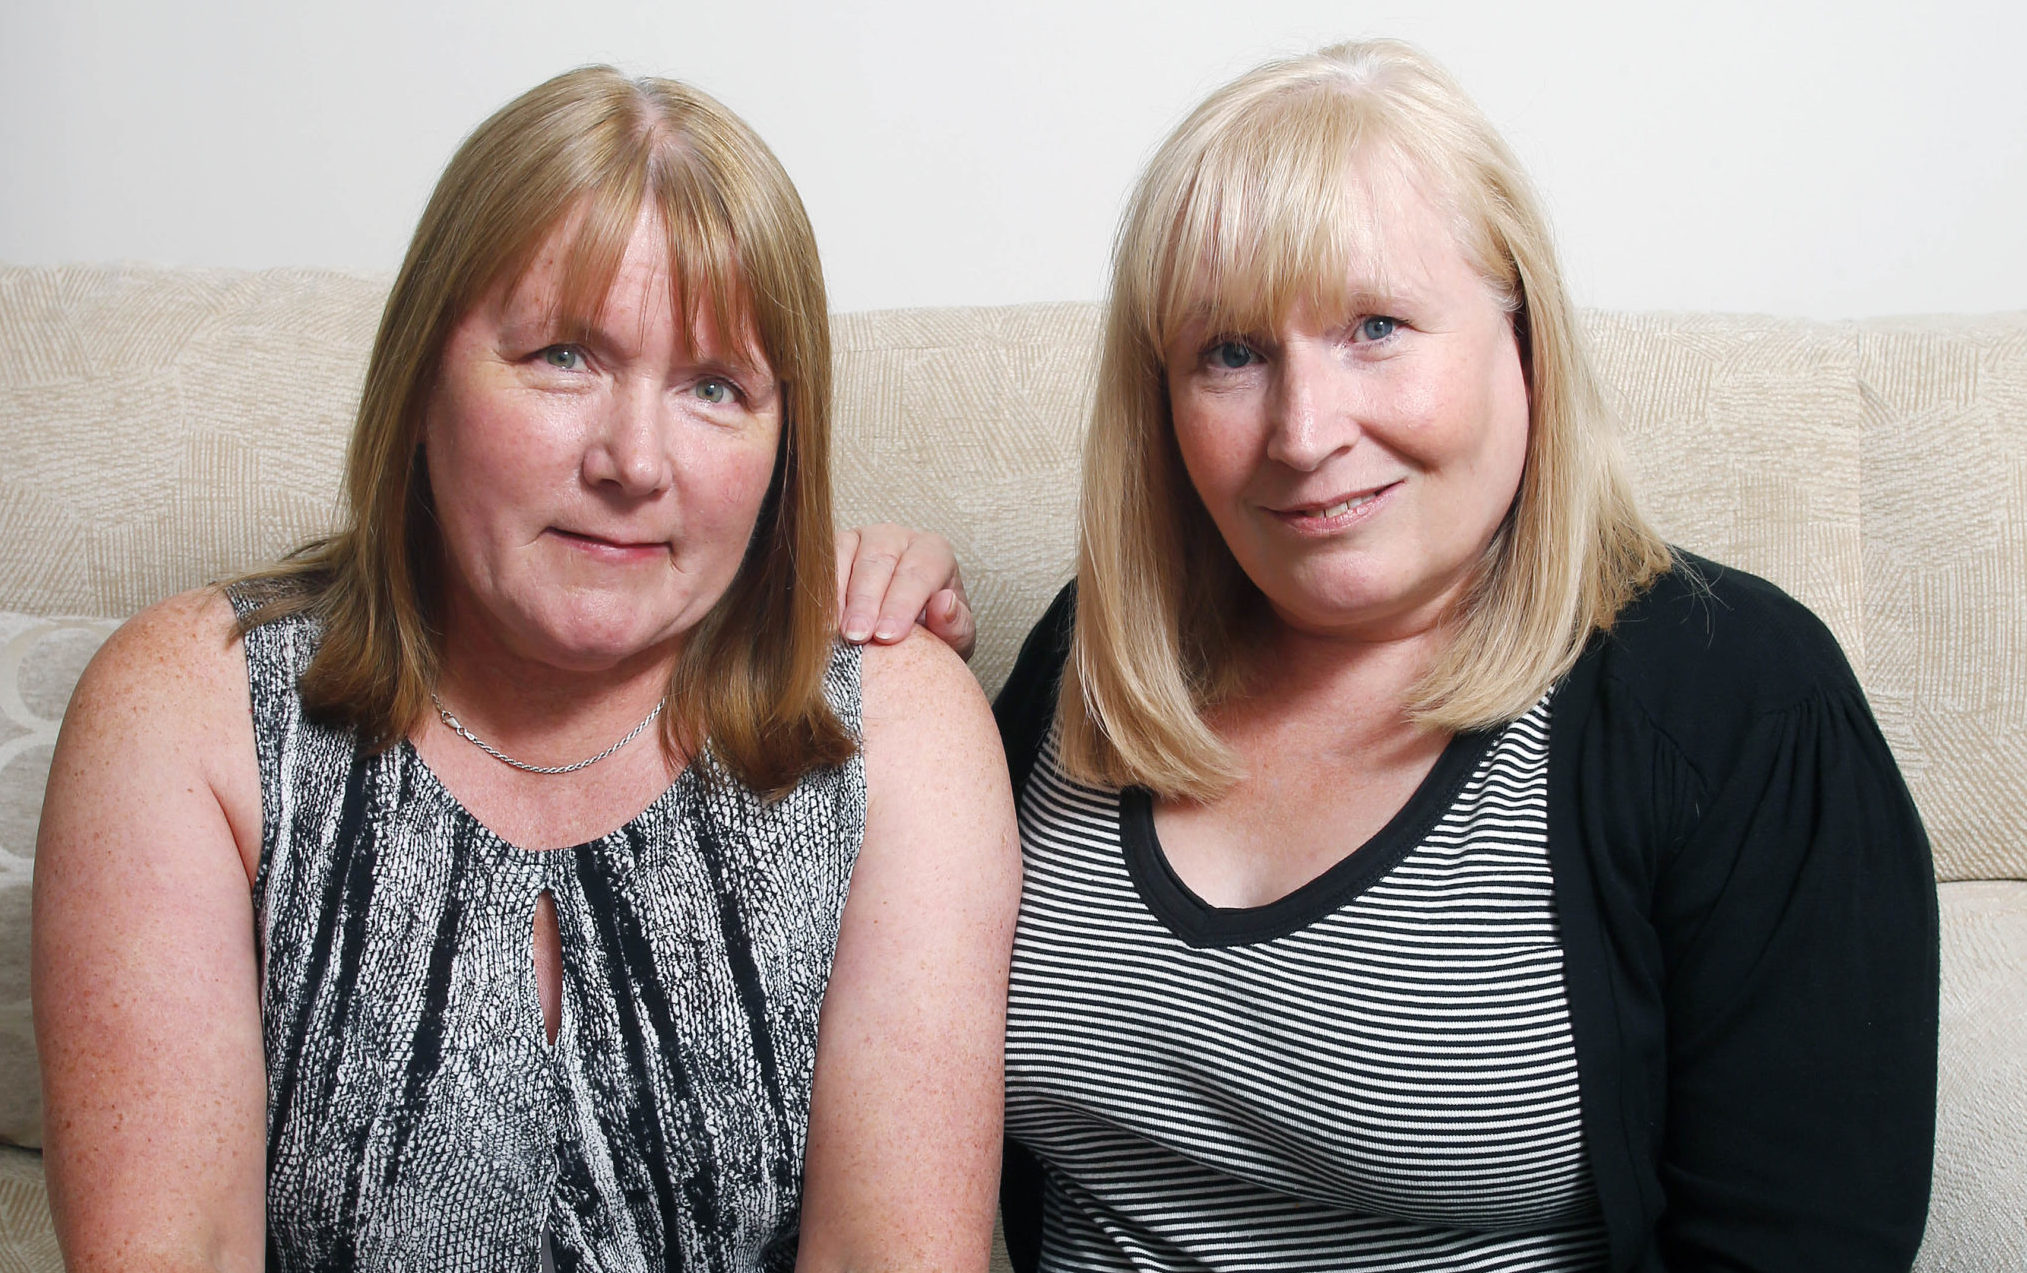 Mesh victim and campaigner Elaine Holmes, right, with fellow victim Olive McIlroy